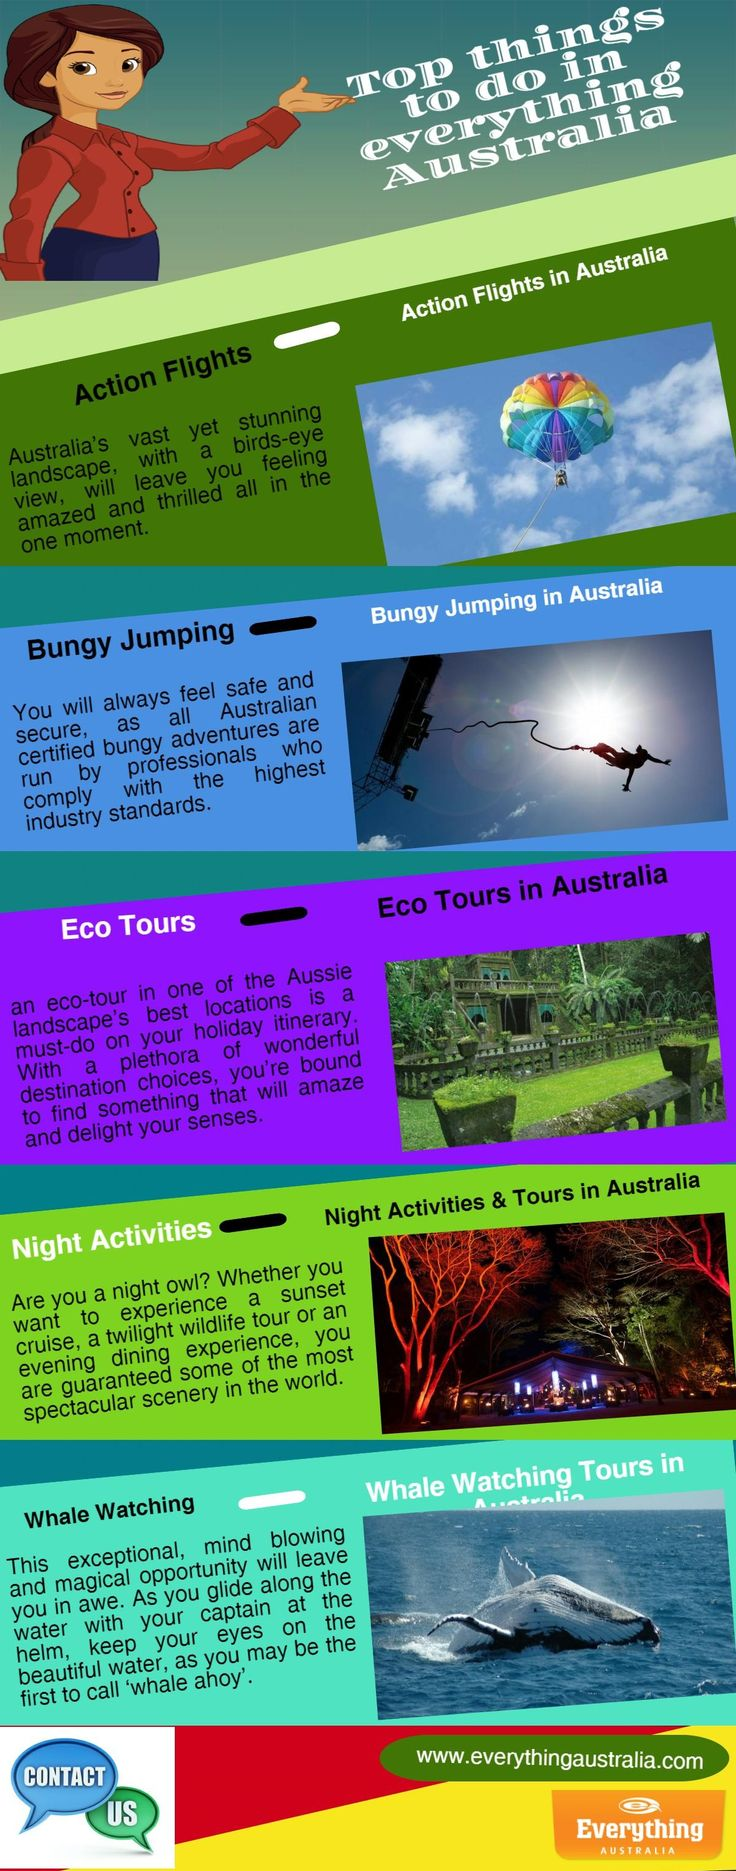 Top things to do in everything Australia